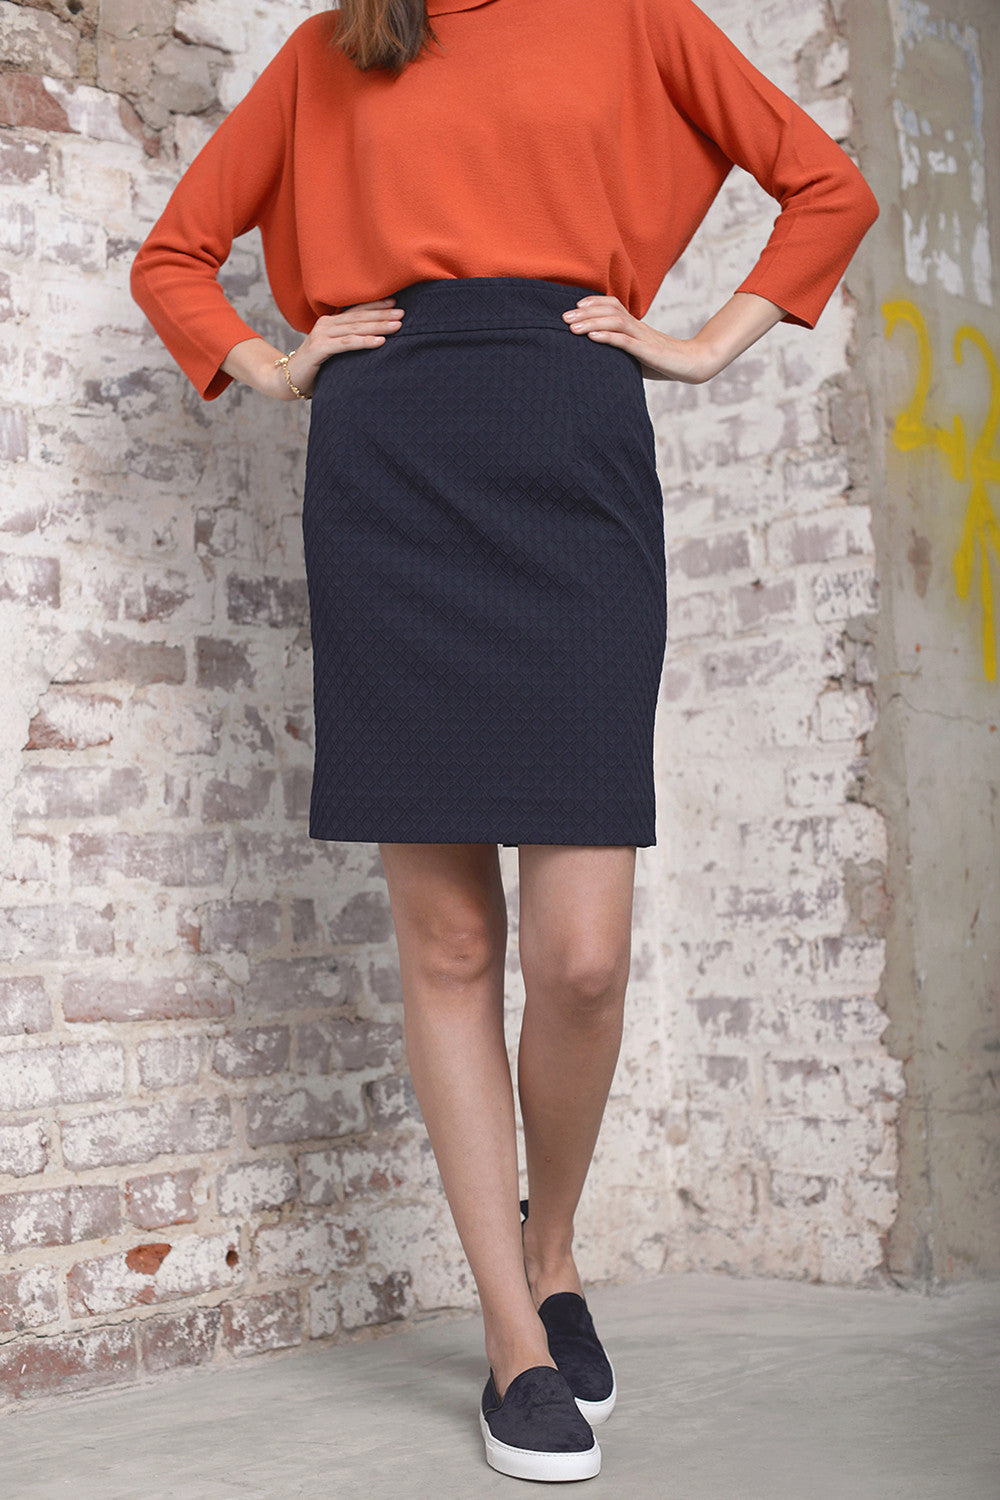 Galain 520 Skirt - notte - PREGO - made with love - Damenmode